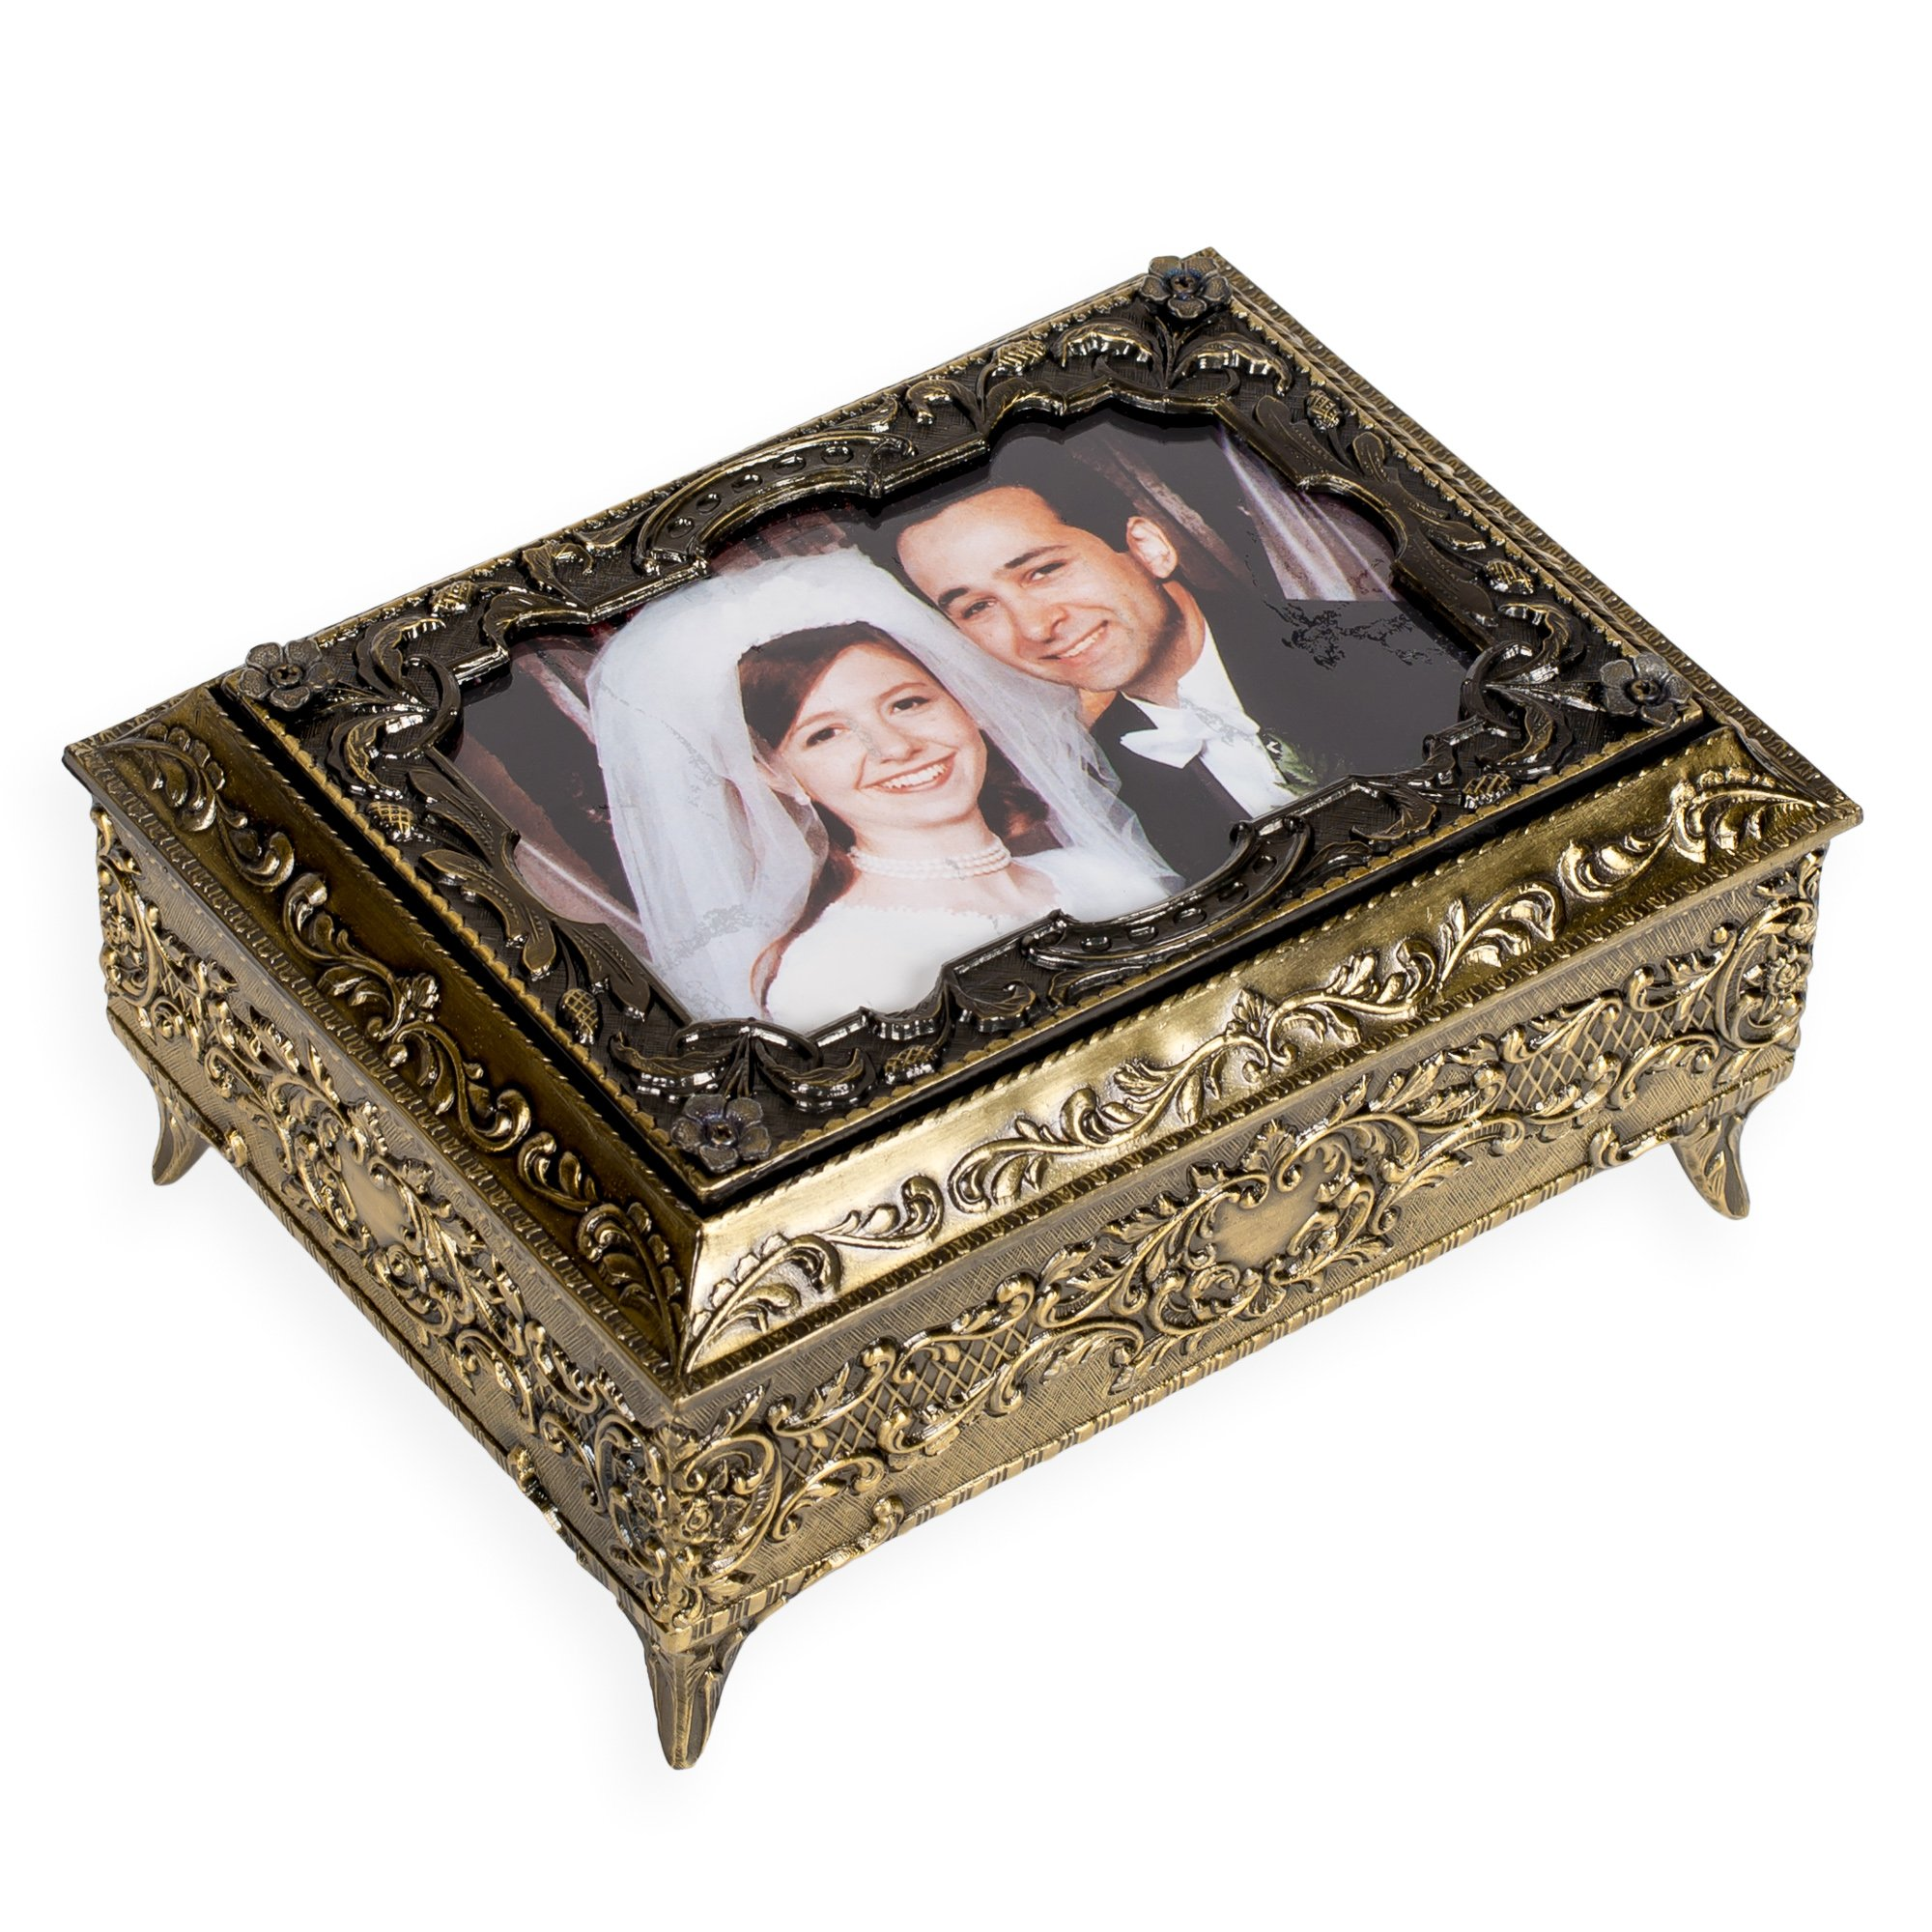 Buy Bronze Metal Photo Frame Lid Jewelry Music Box - Plays Song My ...